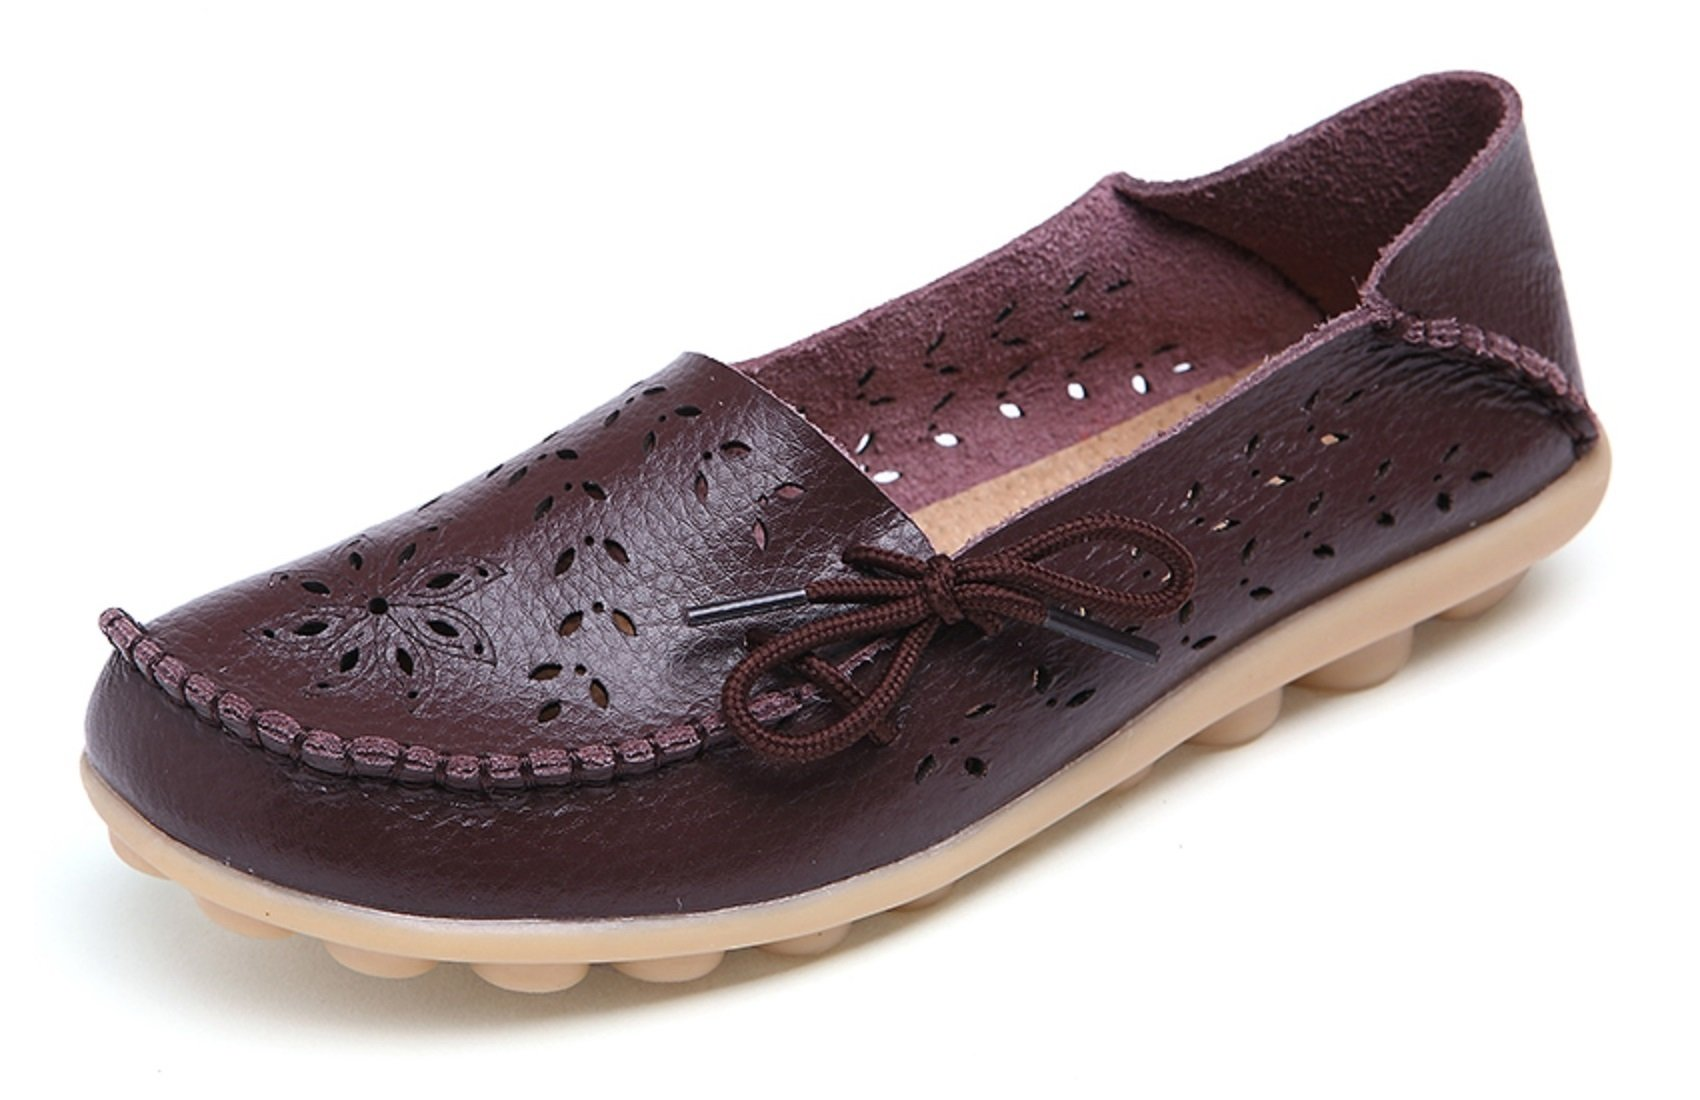 VenusCelia Women's Breathable Comfort Walking Flat Loafer(9 B(M) US,Brown)